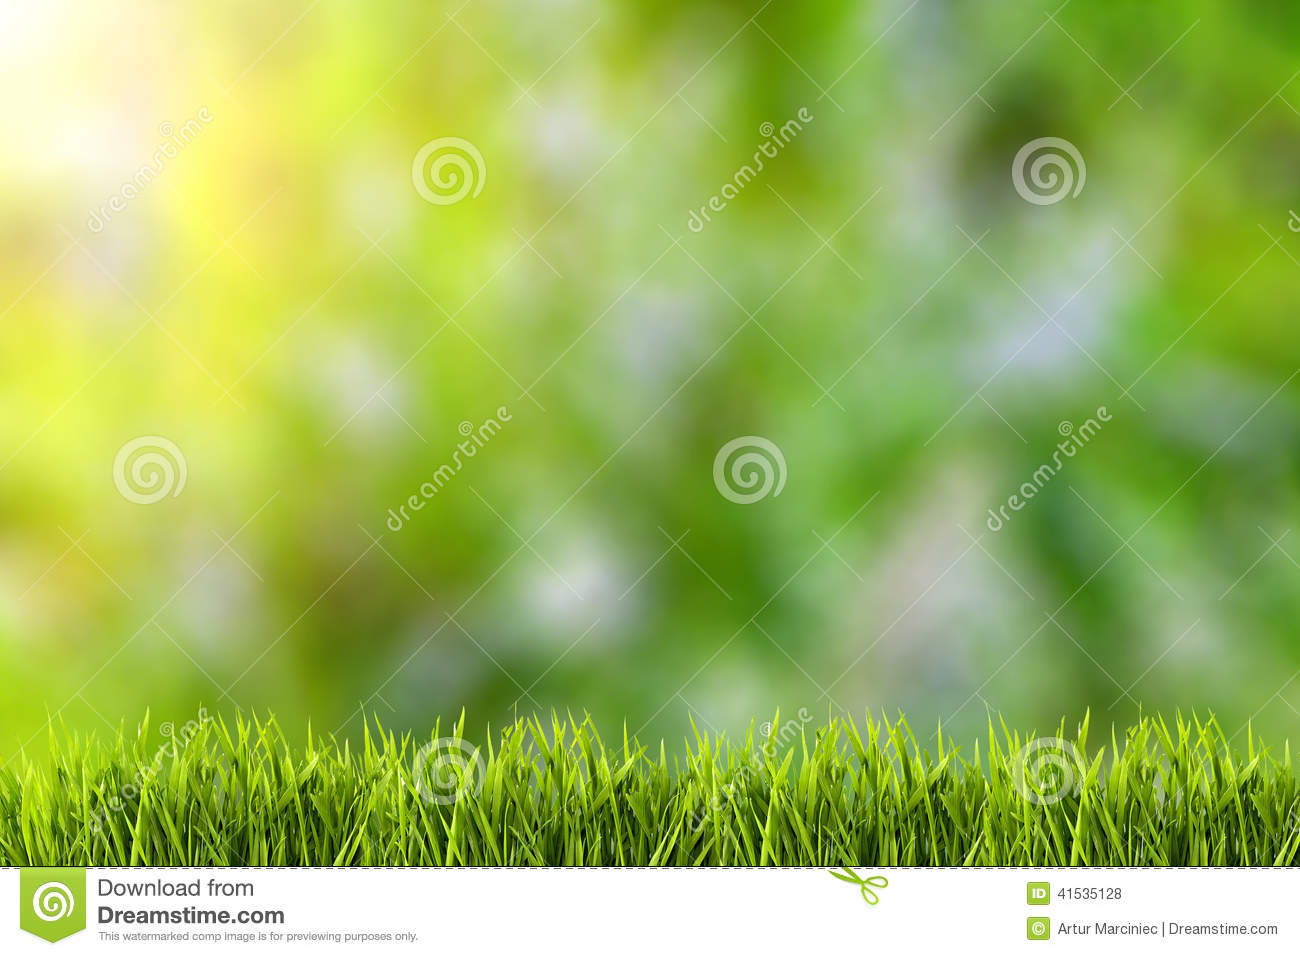 Abstract natural backgrounds on green grass.